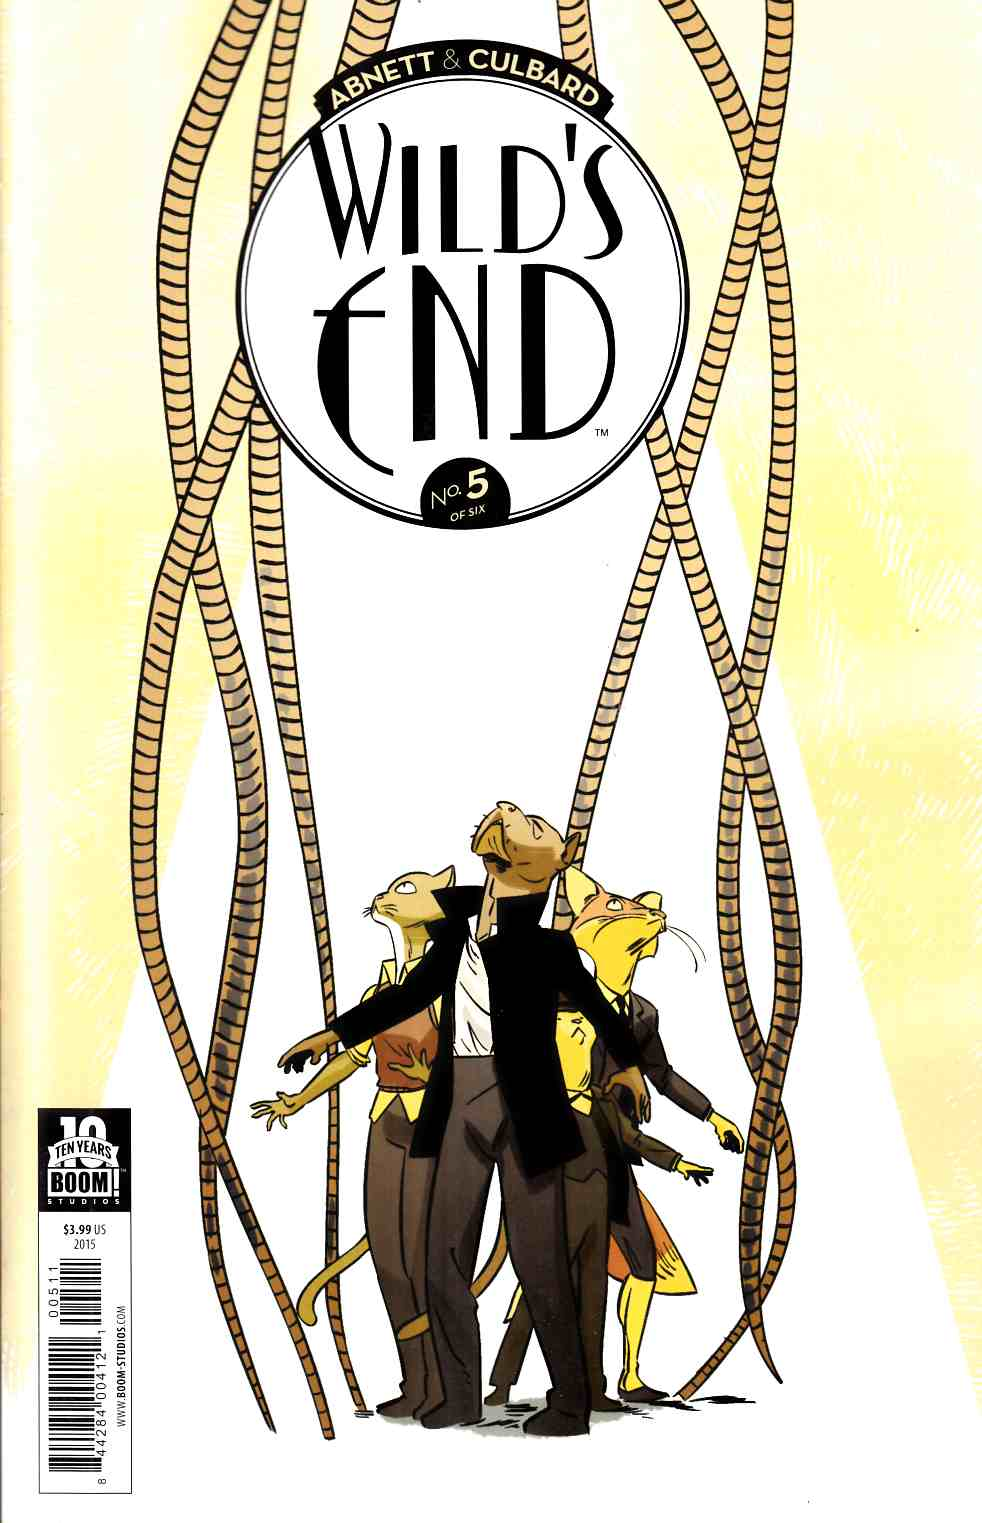 Wilds End #5 [Boom Comic]